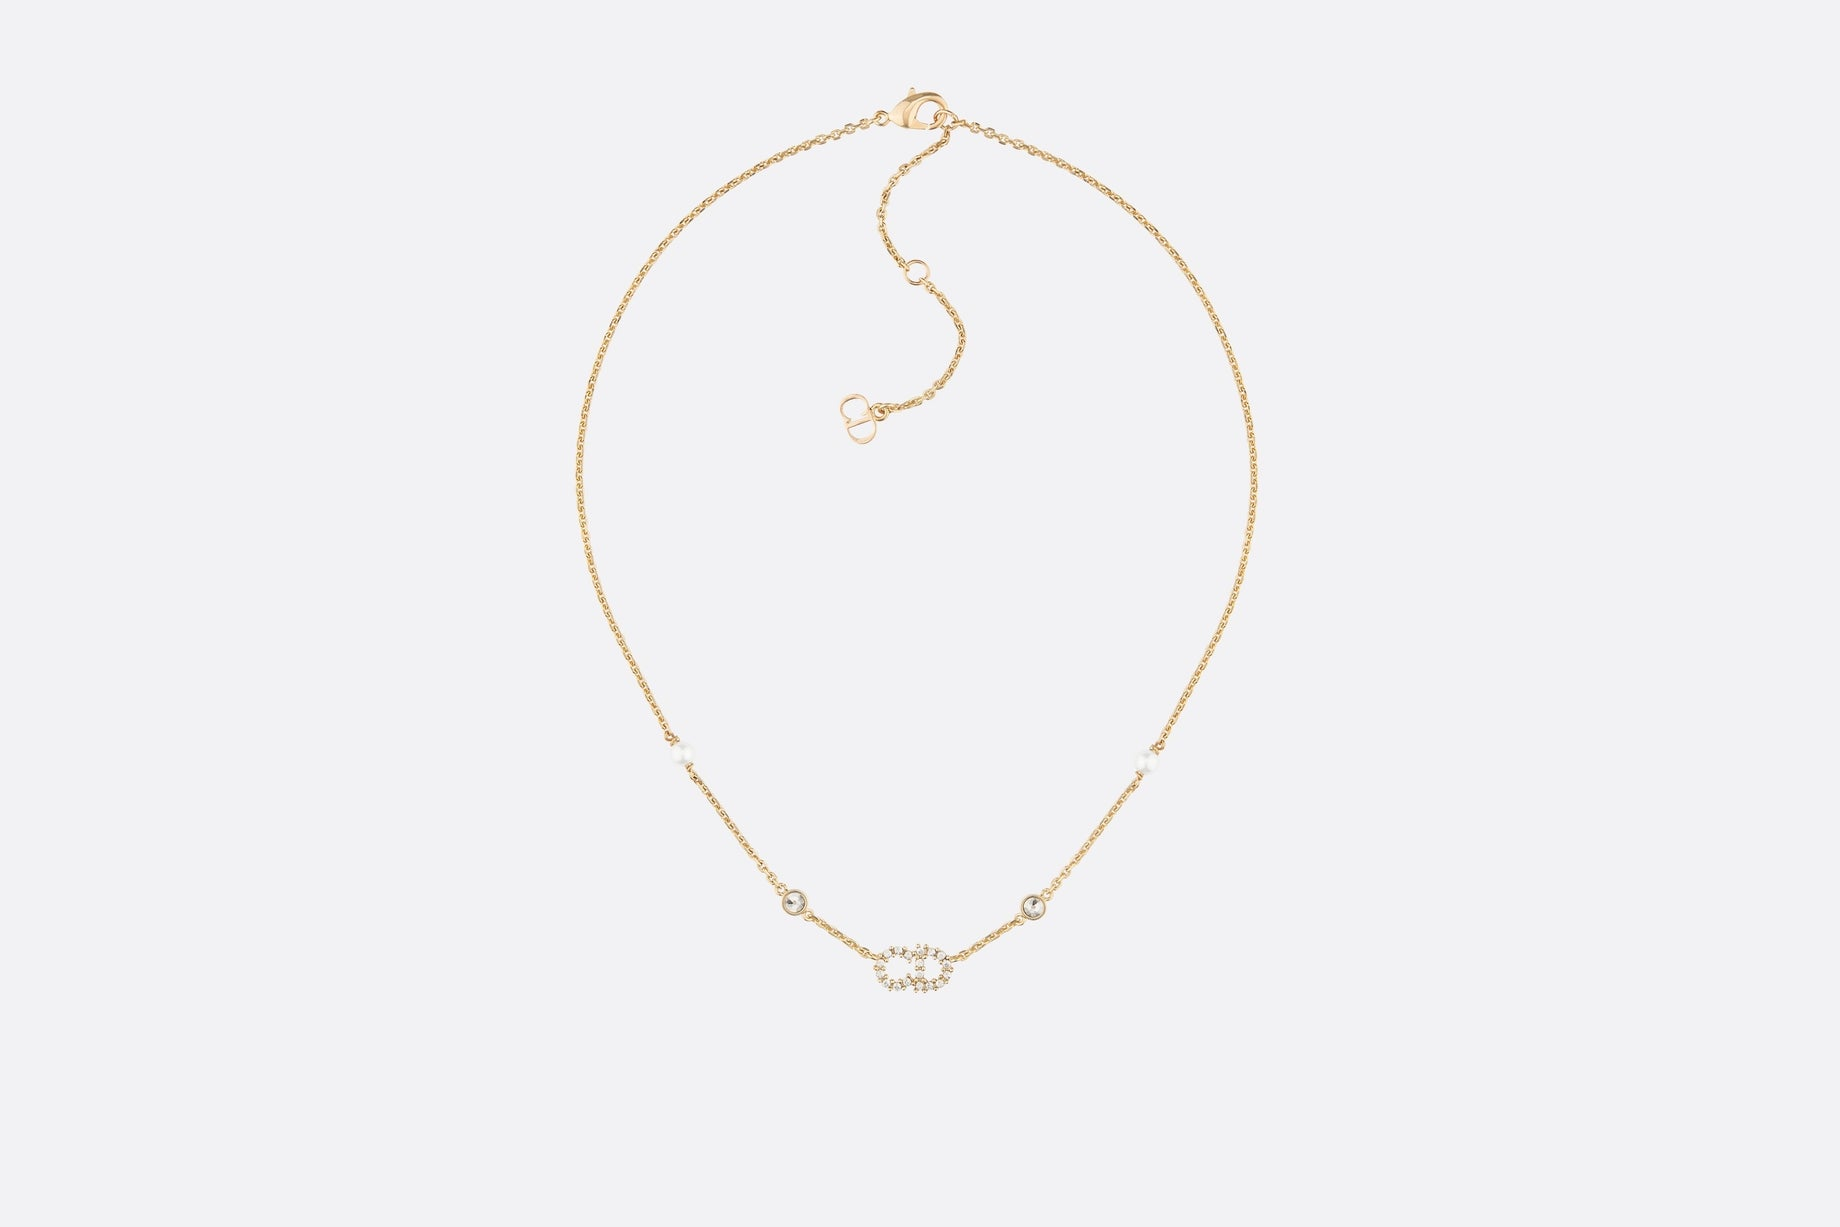 Clair D Lune Necklace • Gold-Finish Metal, White Resin Pearls and White Crystals